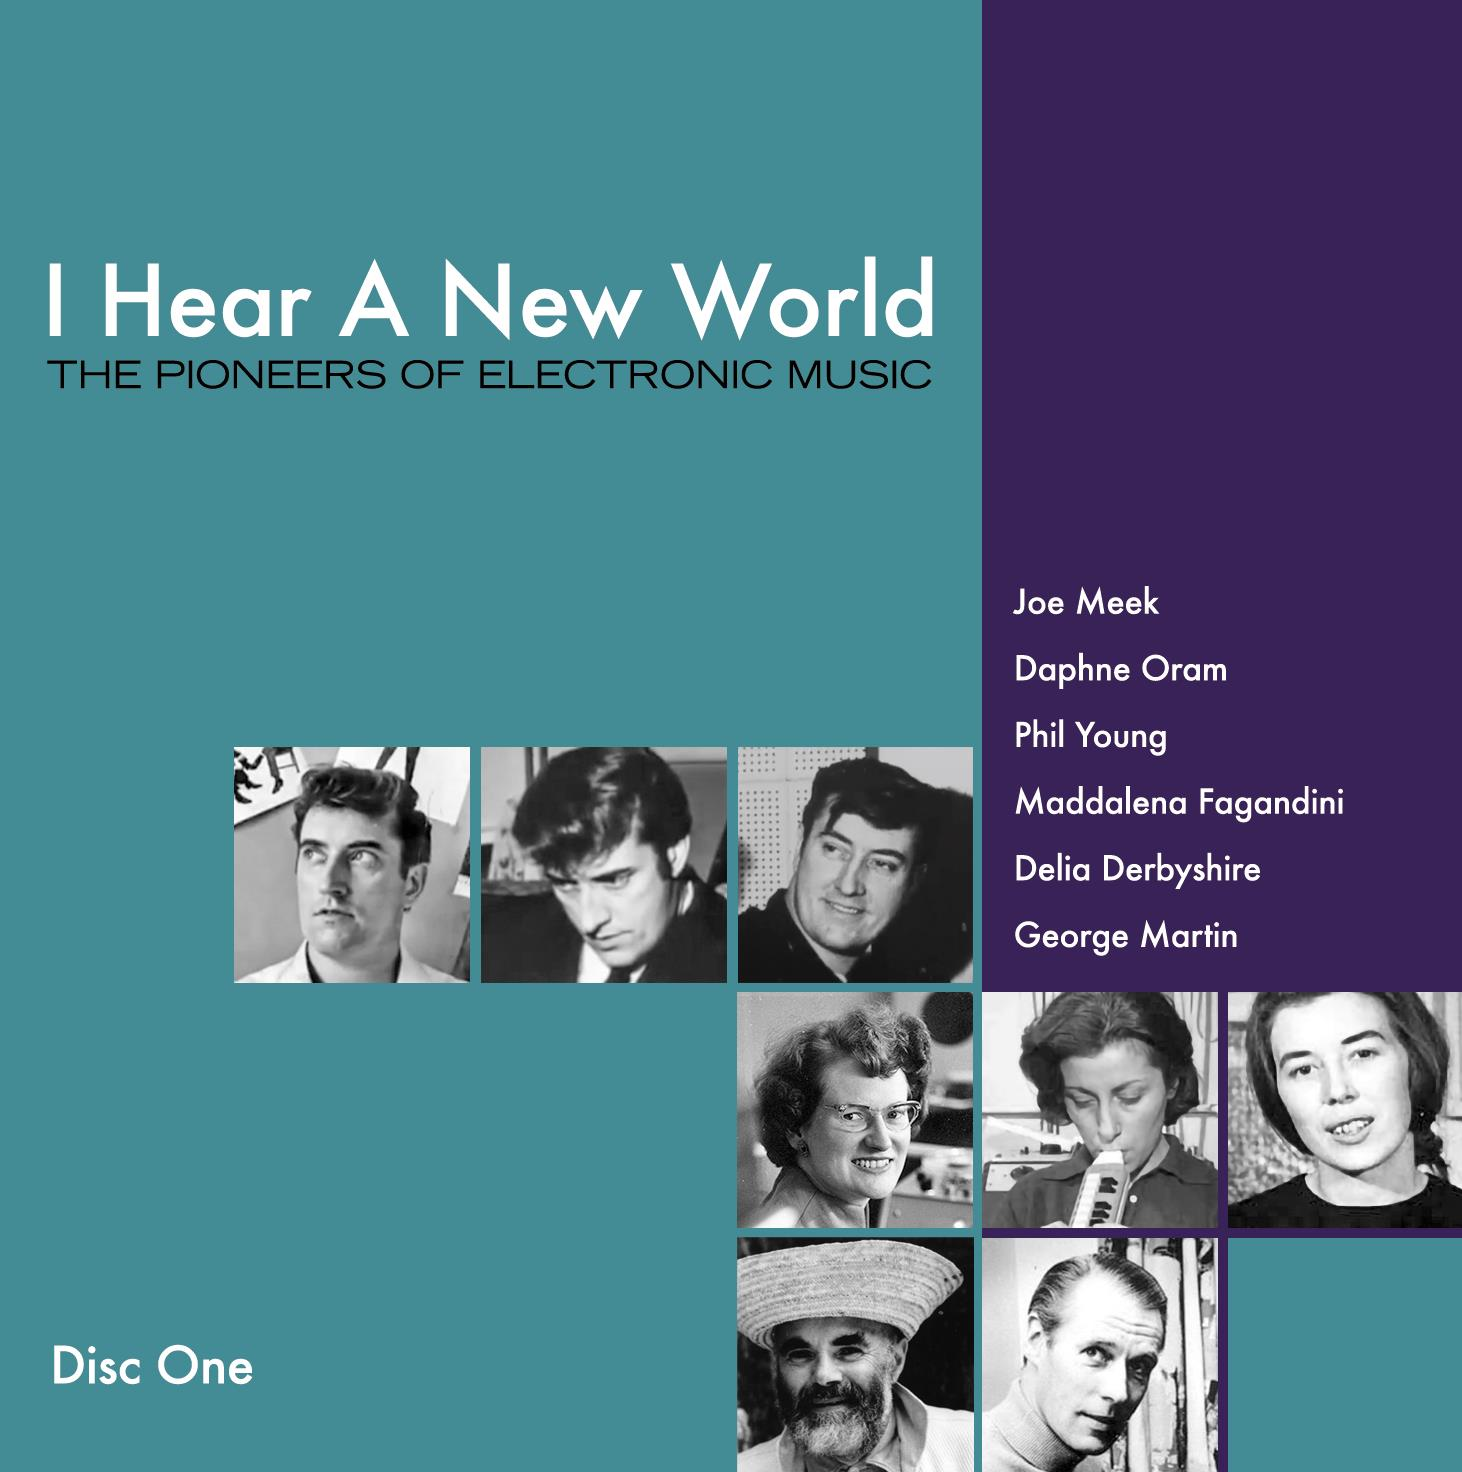 I Hear A New World - The Pioneers of Electronic Music, An Outer Space Music  Fantasy By Joe Meek, Various Artists, 3CD Boxset